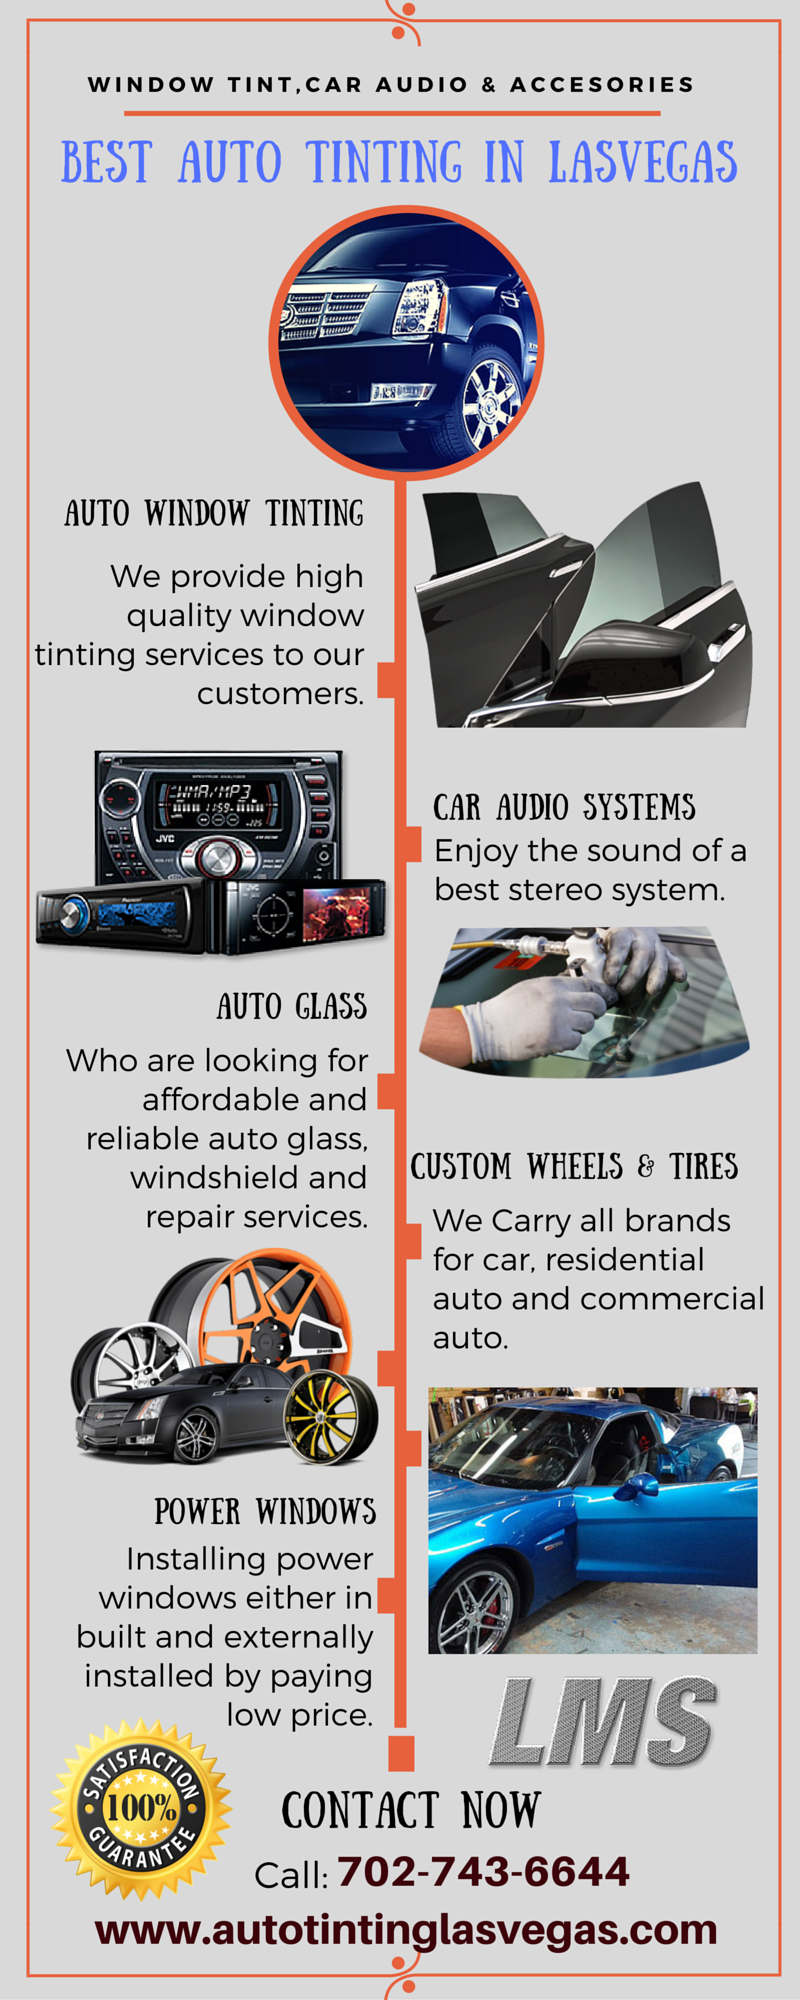 Best Auto Tinting In Las Vegas Are You Looking For Auto Tinting